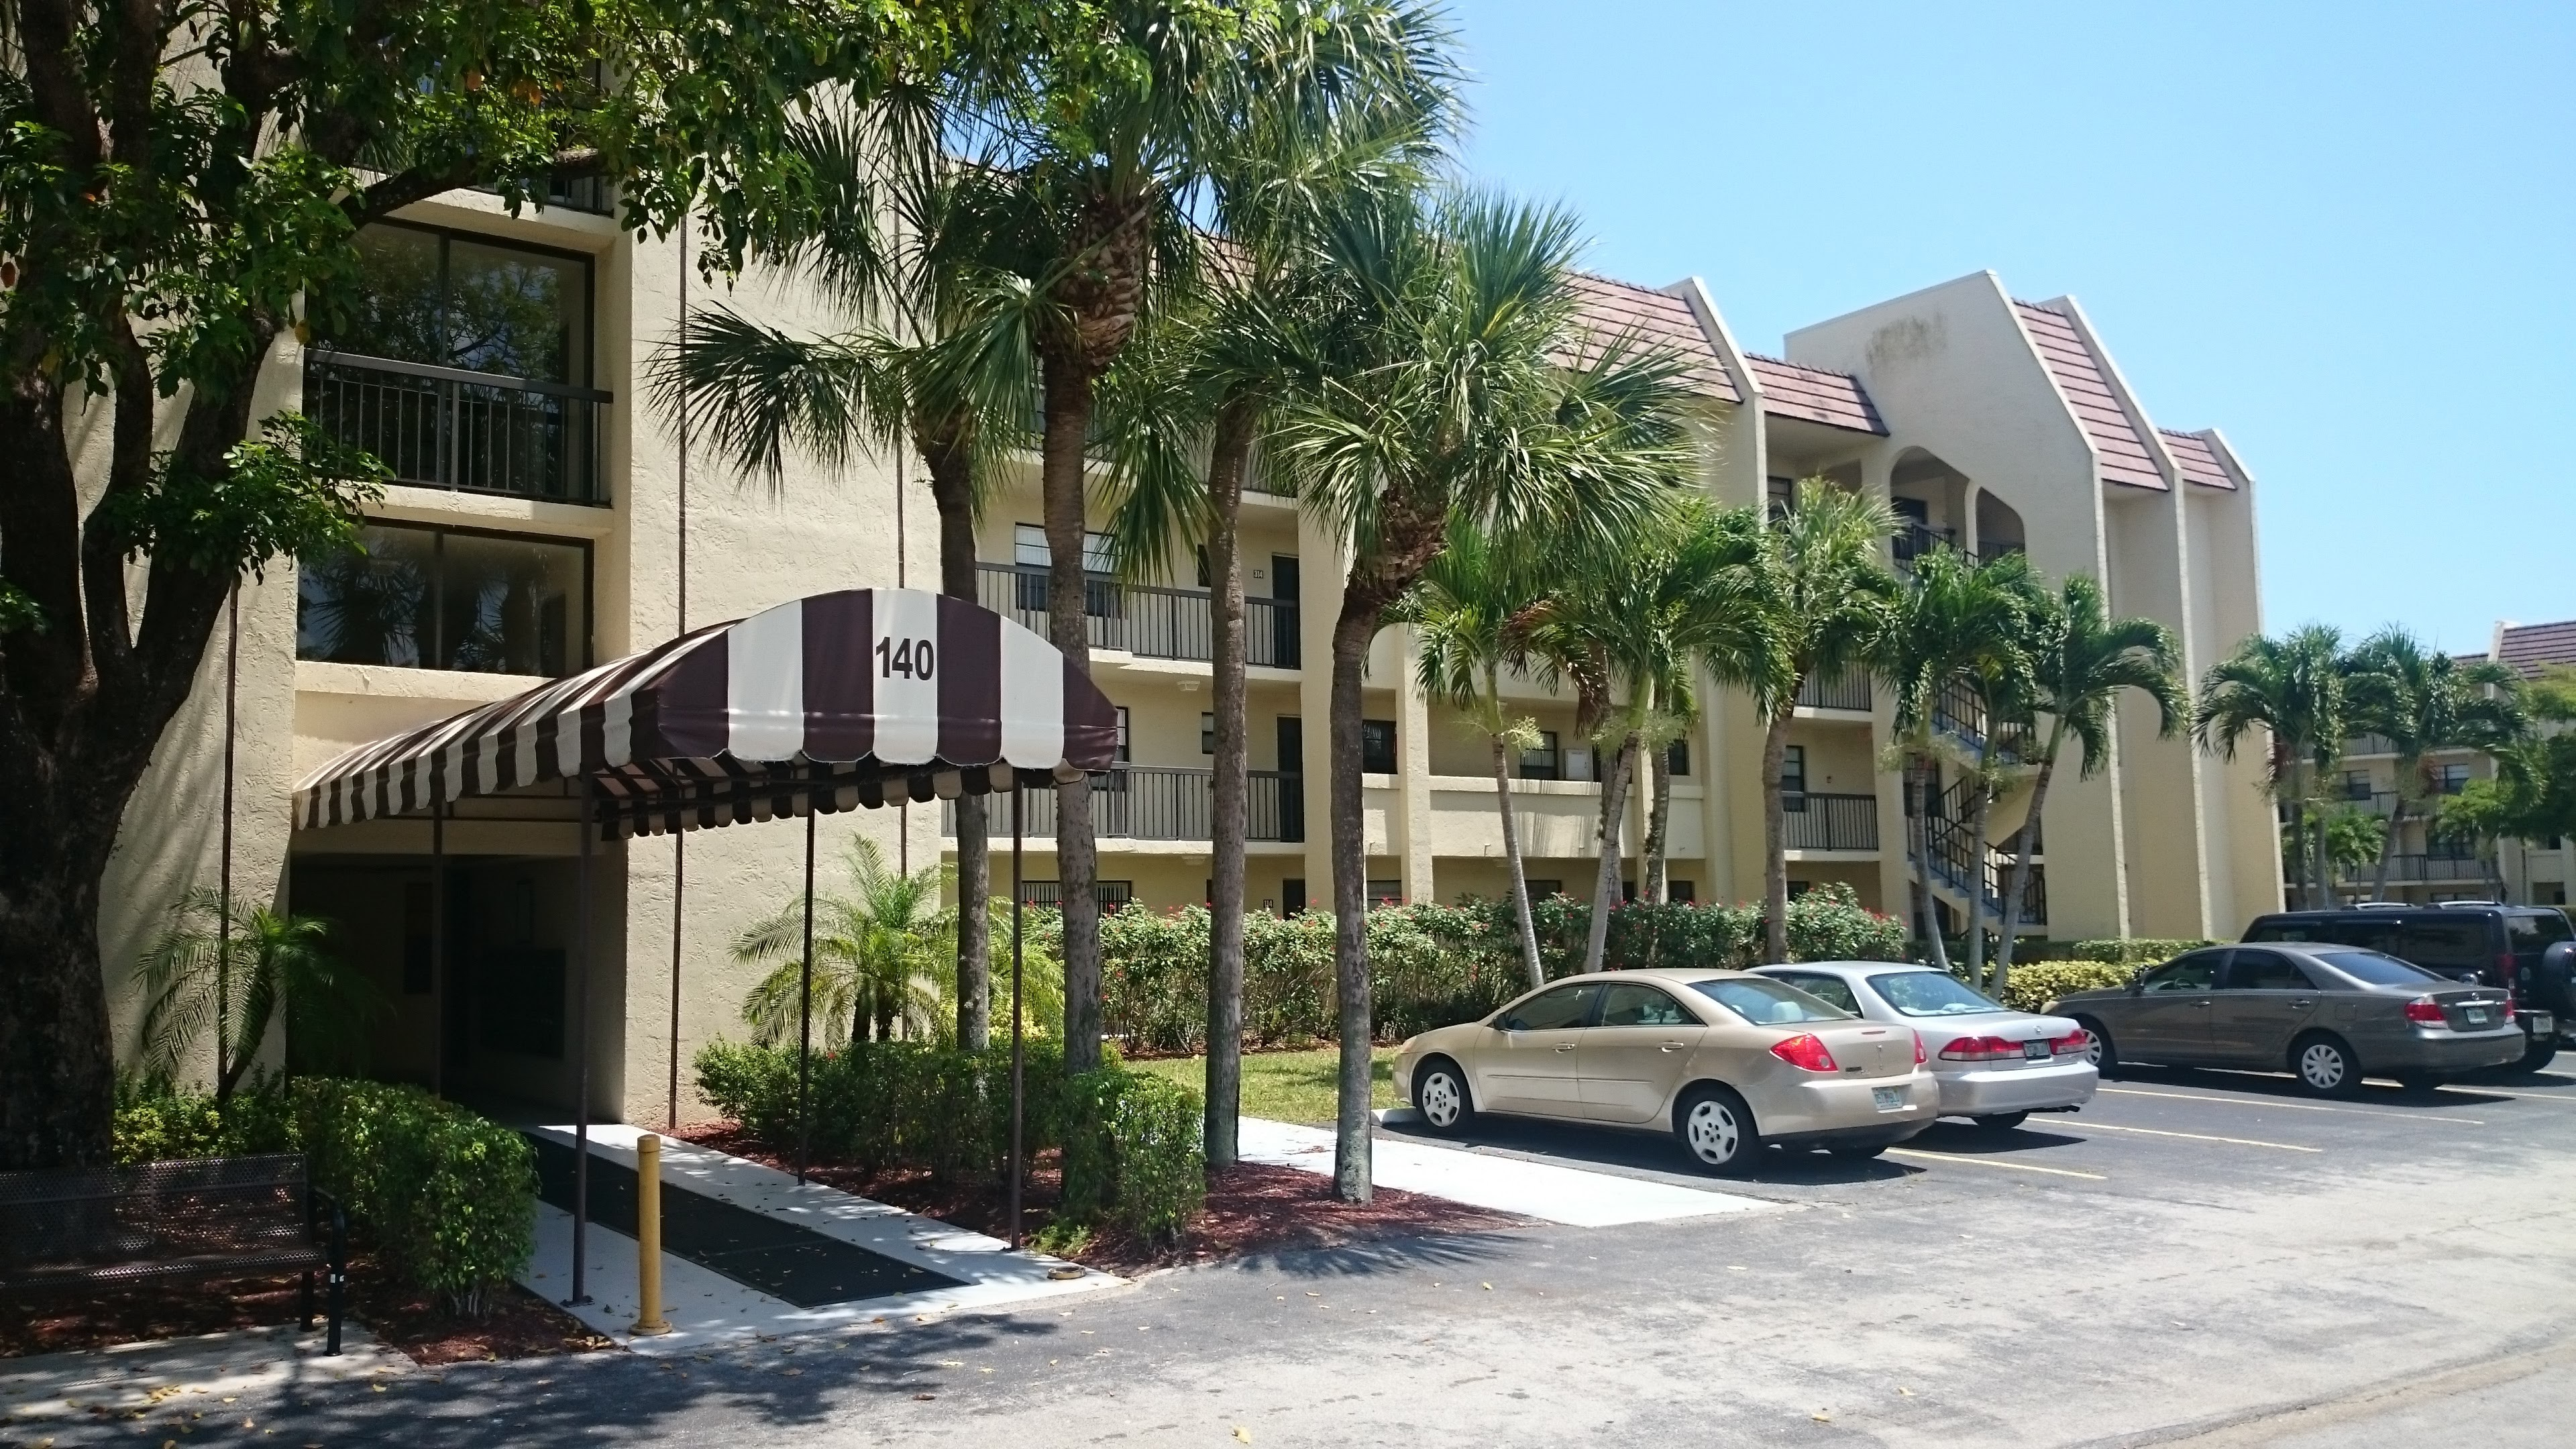 Lake nancy lane 313 west palm beach fl 33411 2 bedroom - 2 bedroom suites in west palm beach fl ...